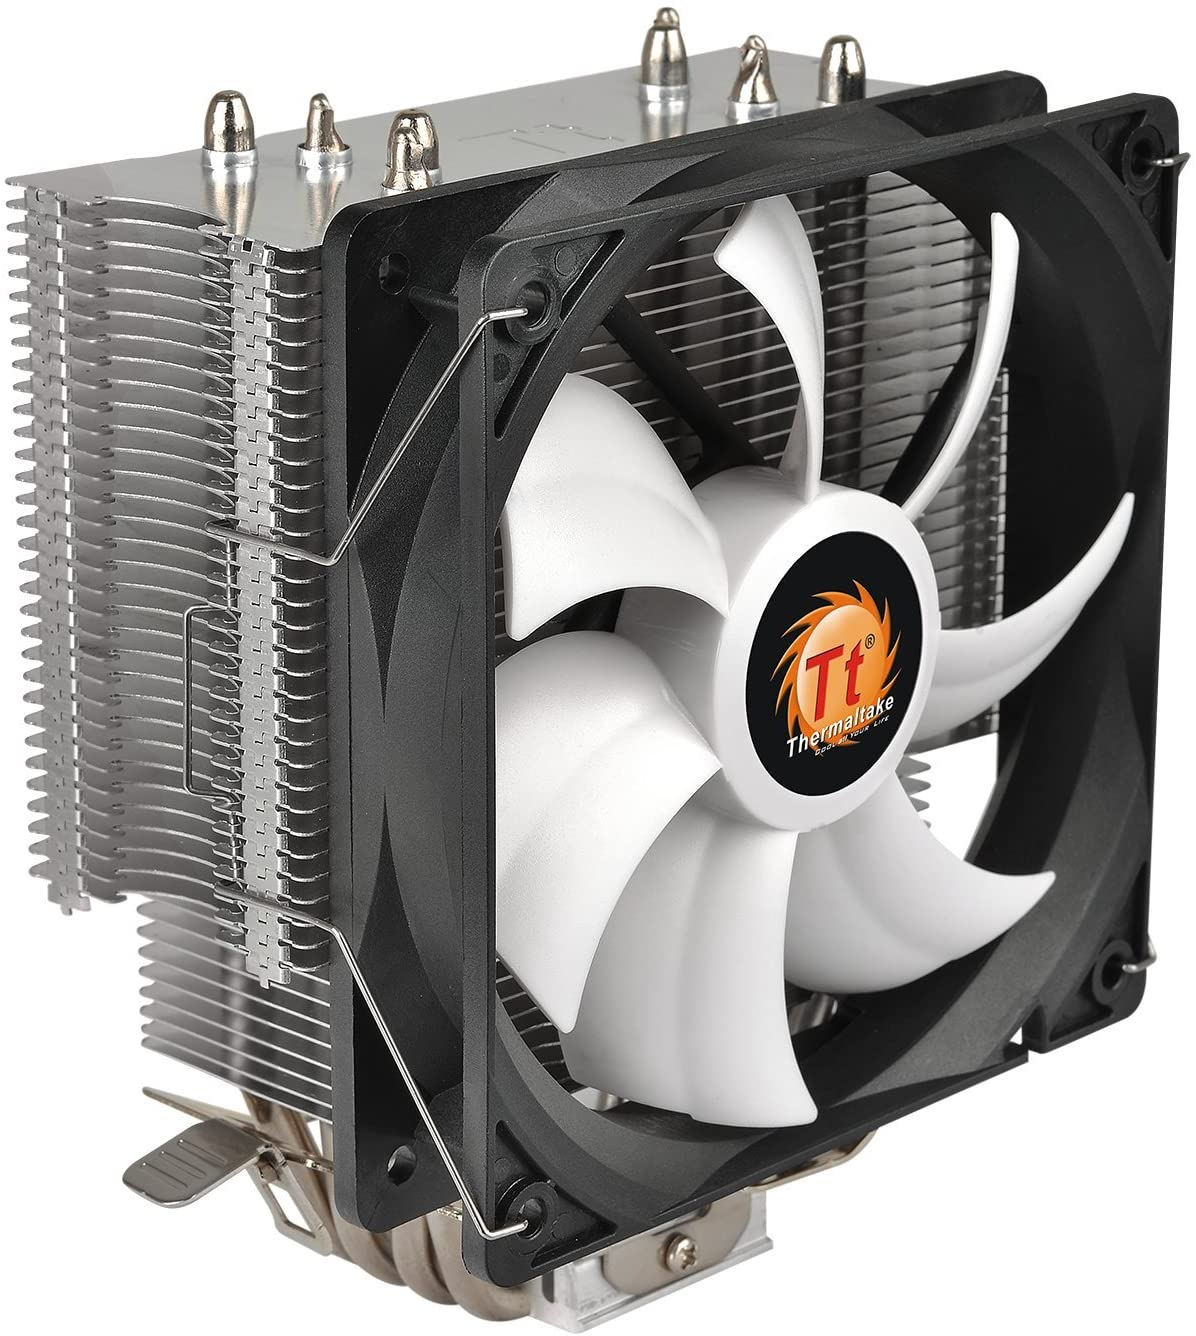 Thermaltake Contac Silent 12 150W INTEL/AMD with AM4 Support 120mm PWM CPU Cooler CL-P039-AL12BL-A